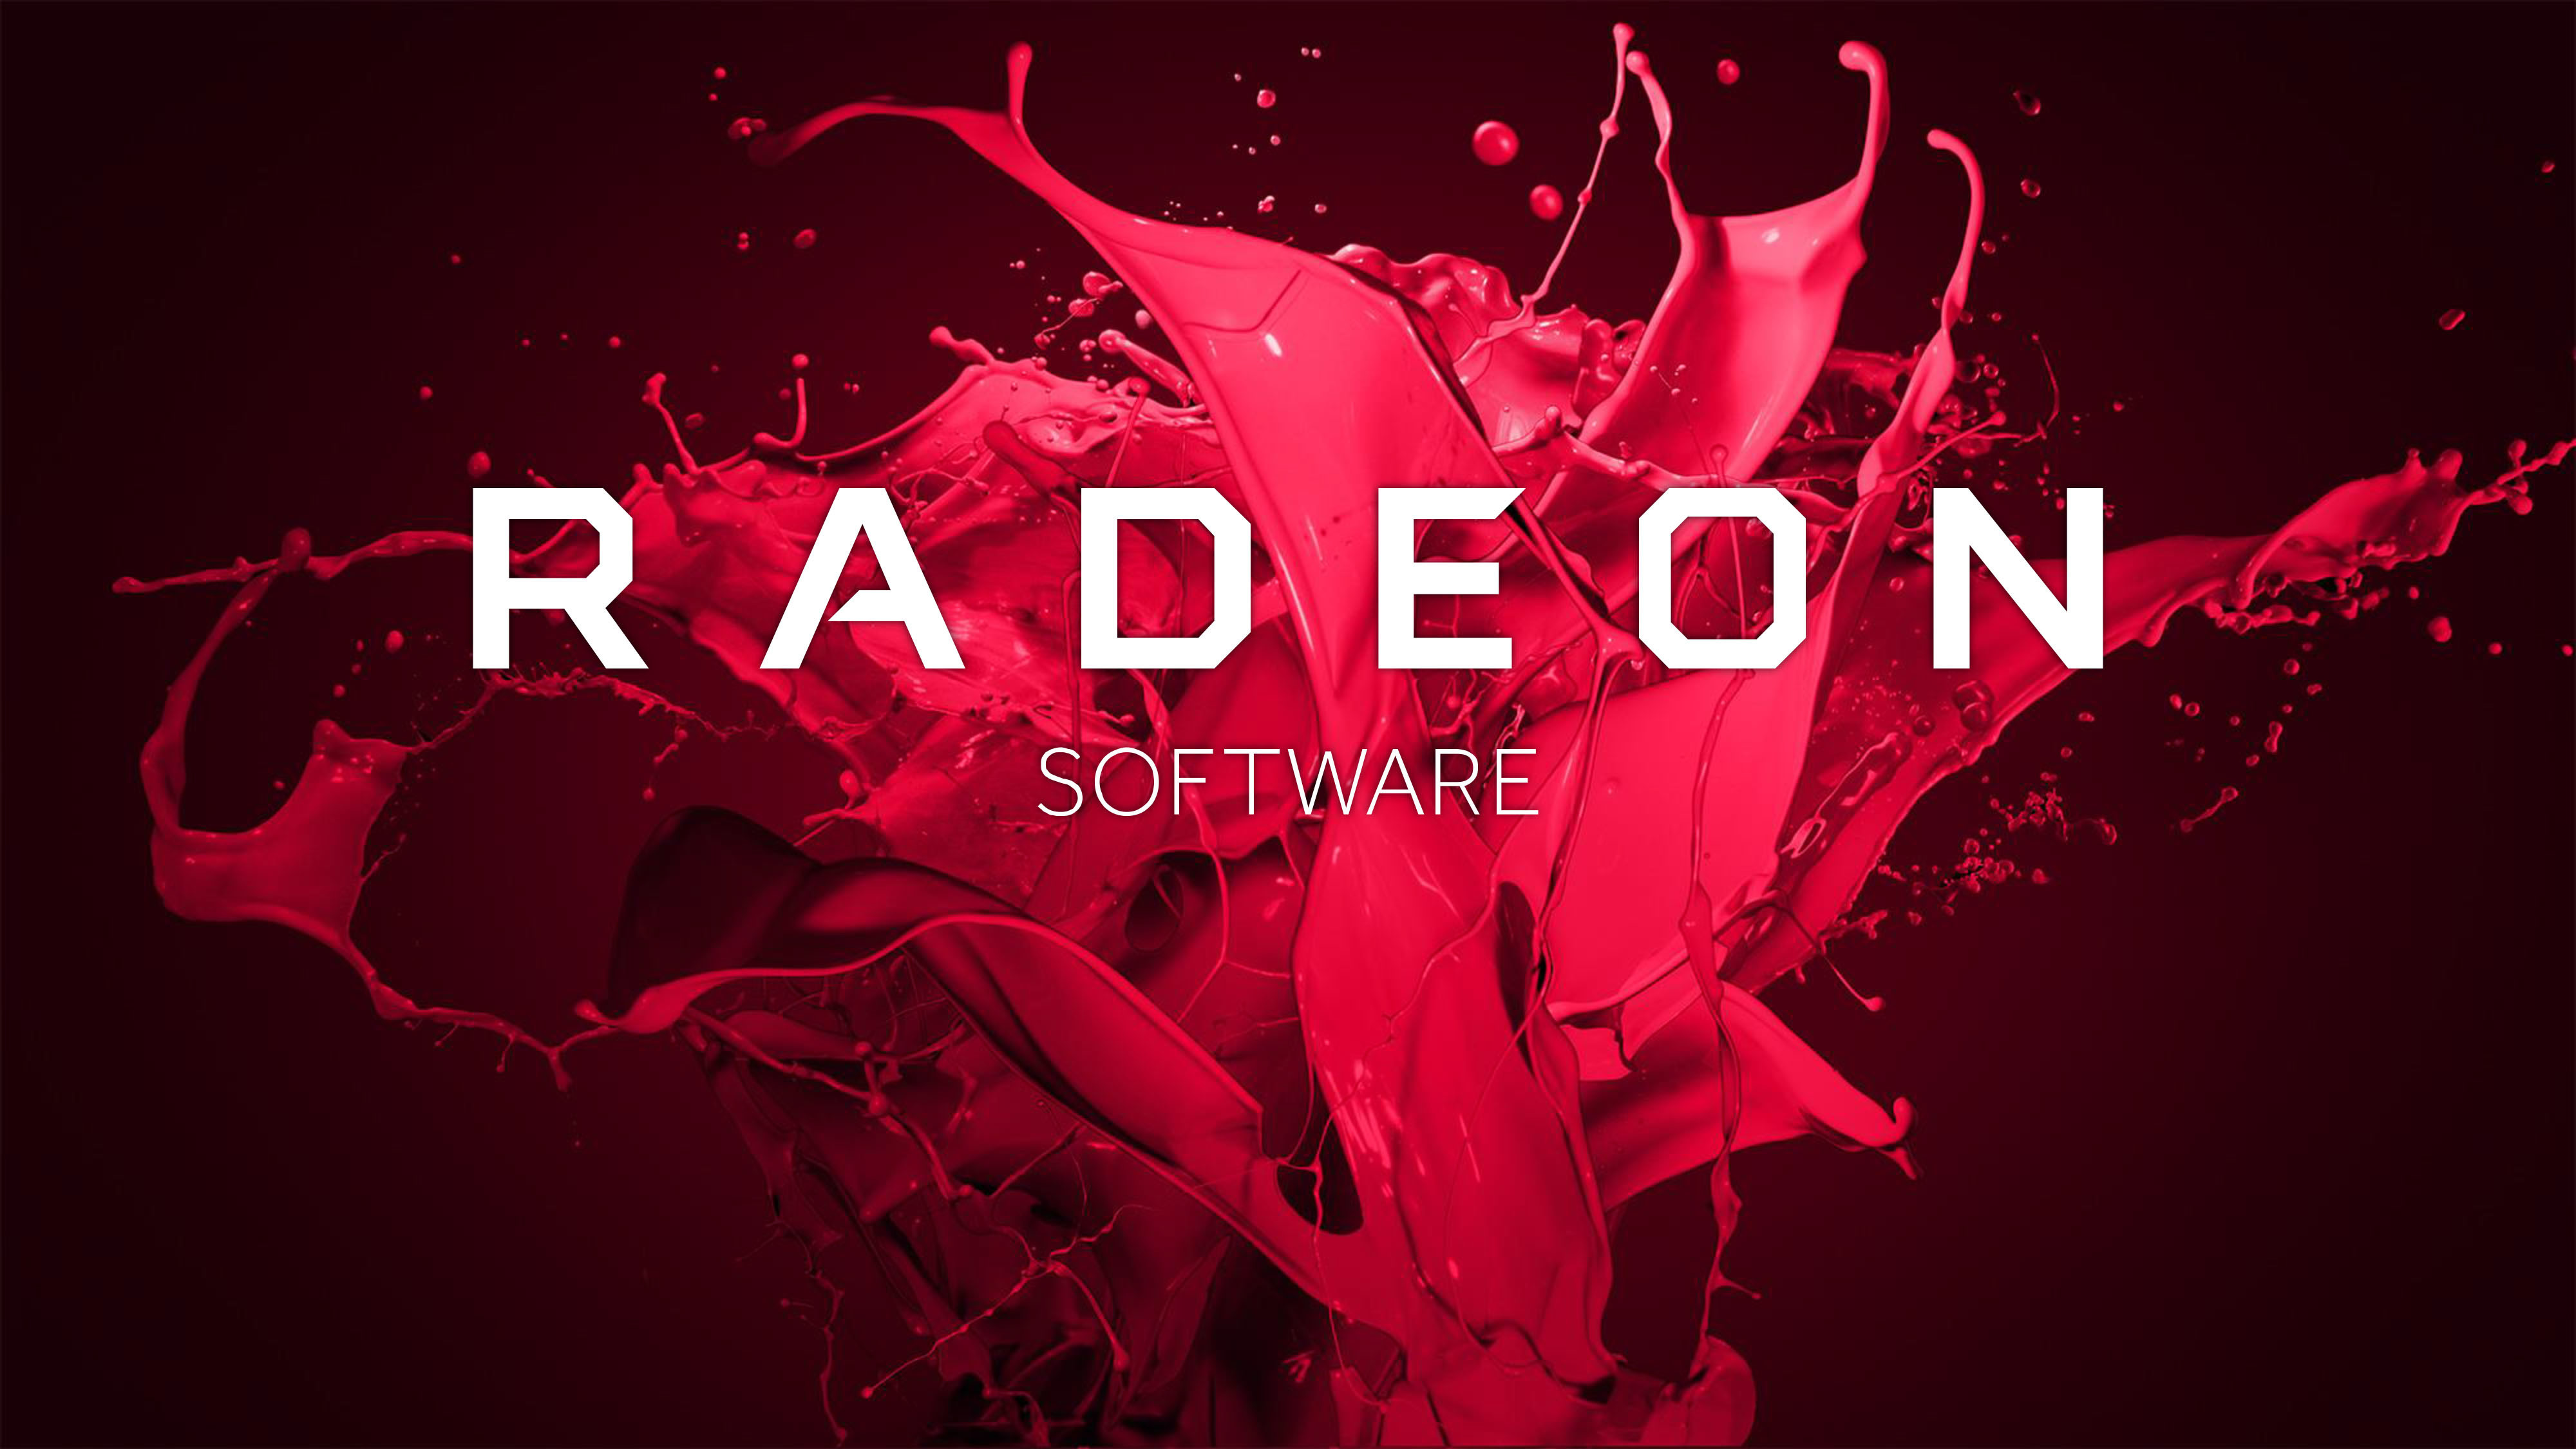 Poster design software windows 7 - Download Amd Radeon Software Crimson Relive Edition 16 12 2 For Windows 10 64 Bit Windows 10 32 Bit Windows 8 1 64 Bit Windows 8 1 32 Bit Windows 7